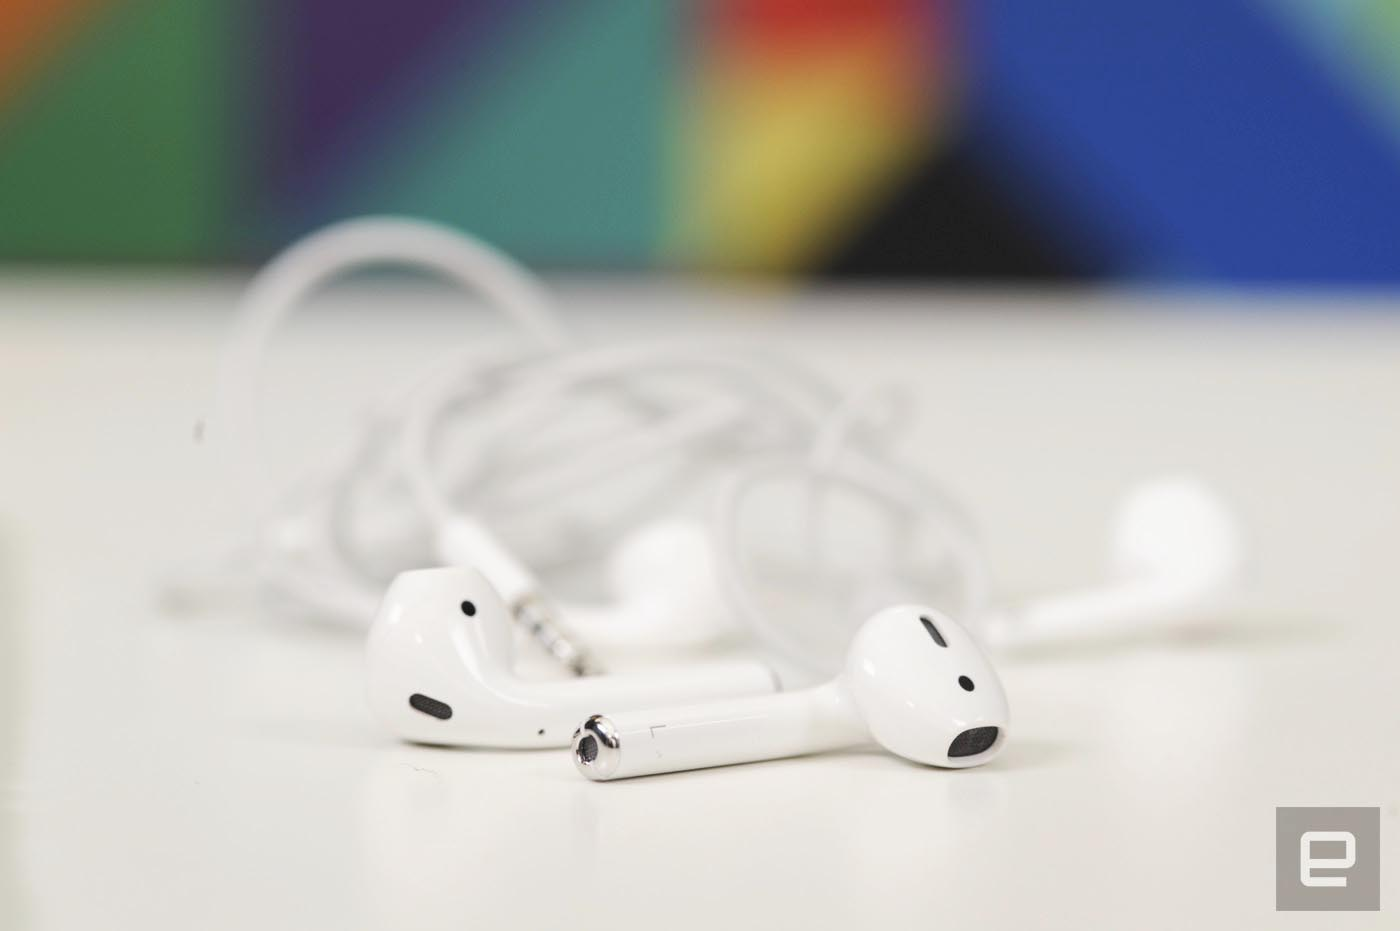 AirPods test